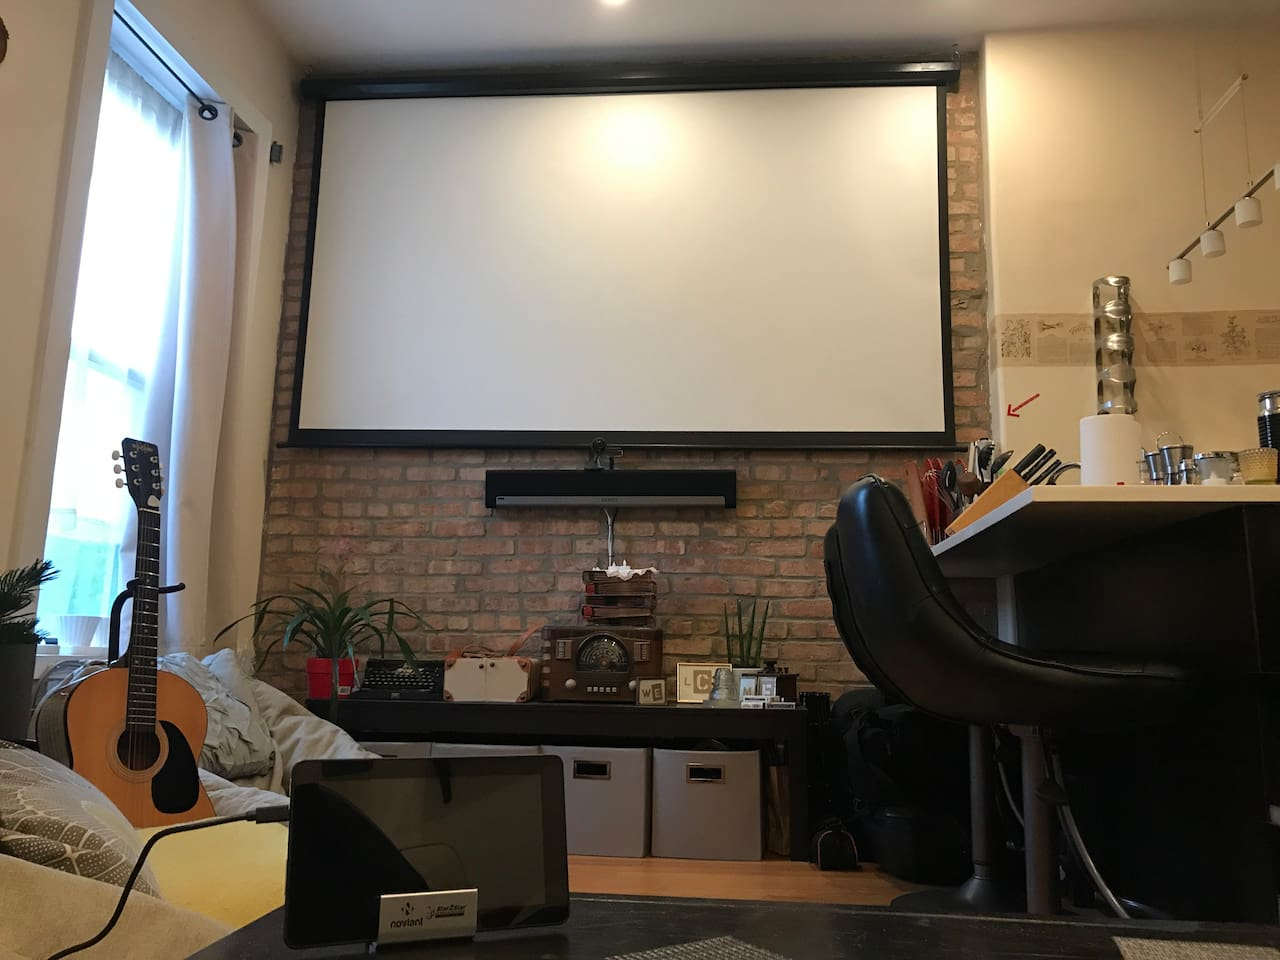 Huuuge projector screen with Apple TV, Amazon Fire TV and even an Xbox. SONOS system throughout apartment.